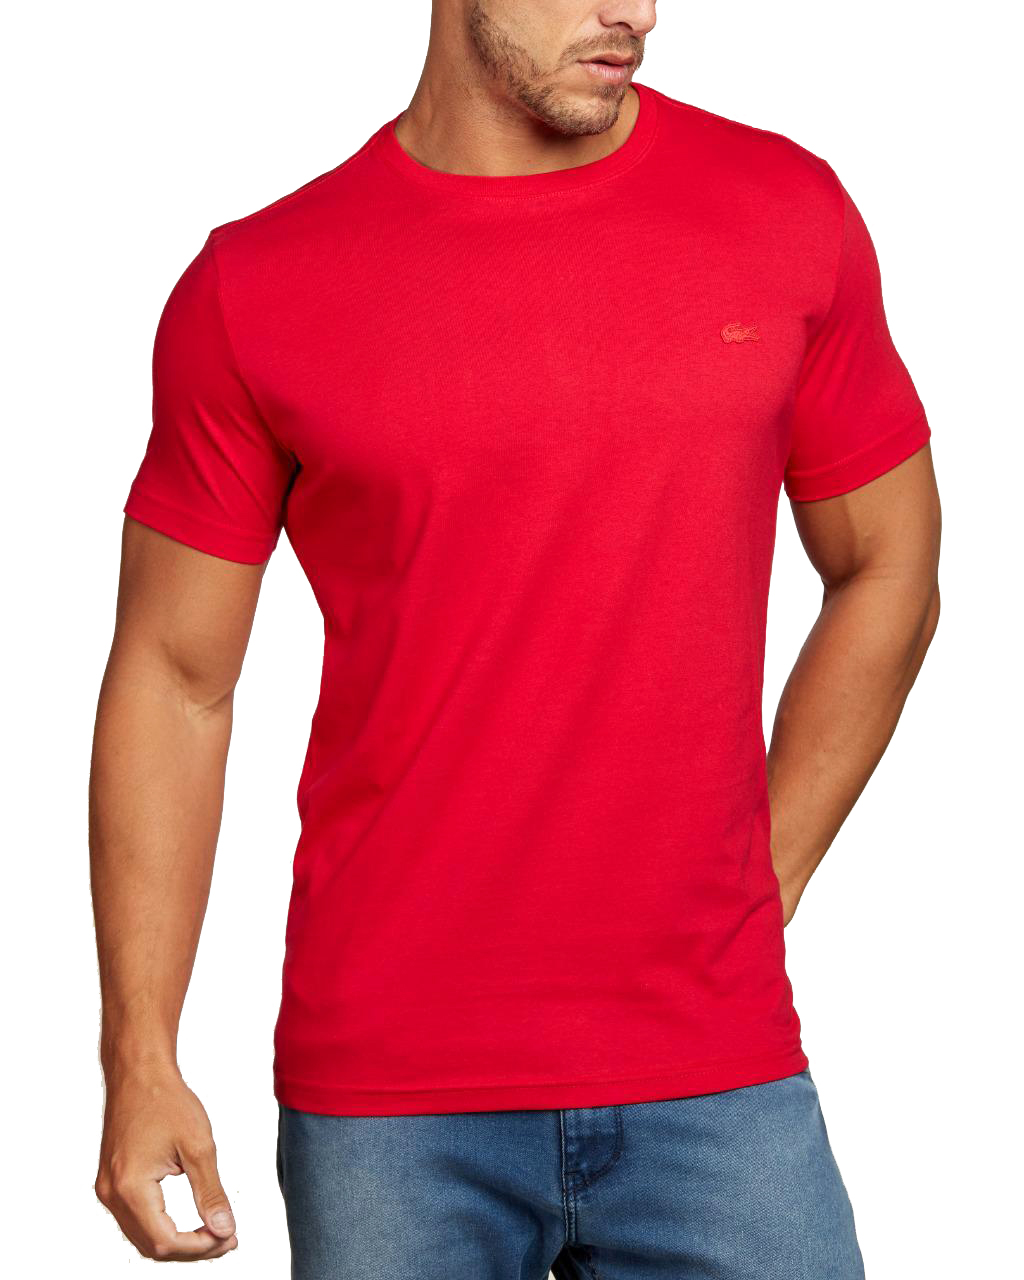 Camiseta Lacoste Live Masculina Icon Patch Red Classic Vermelho